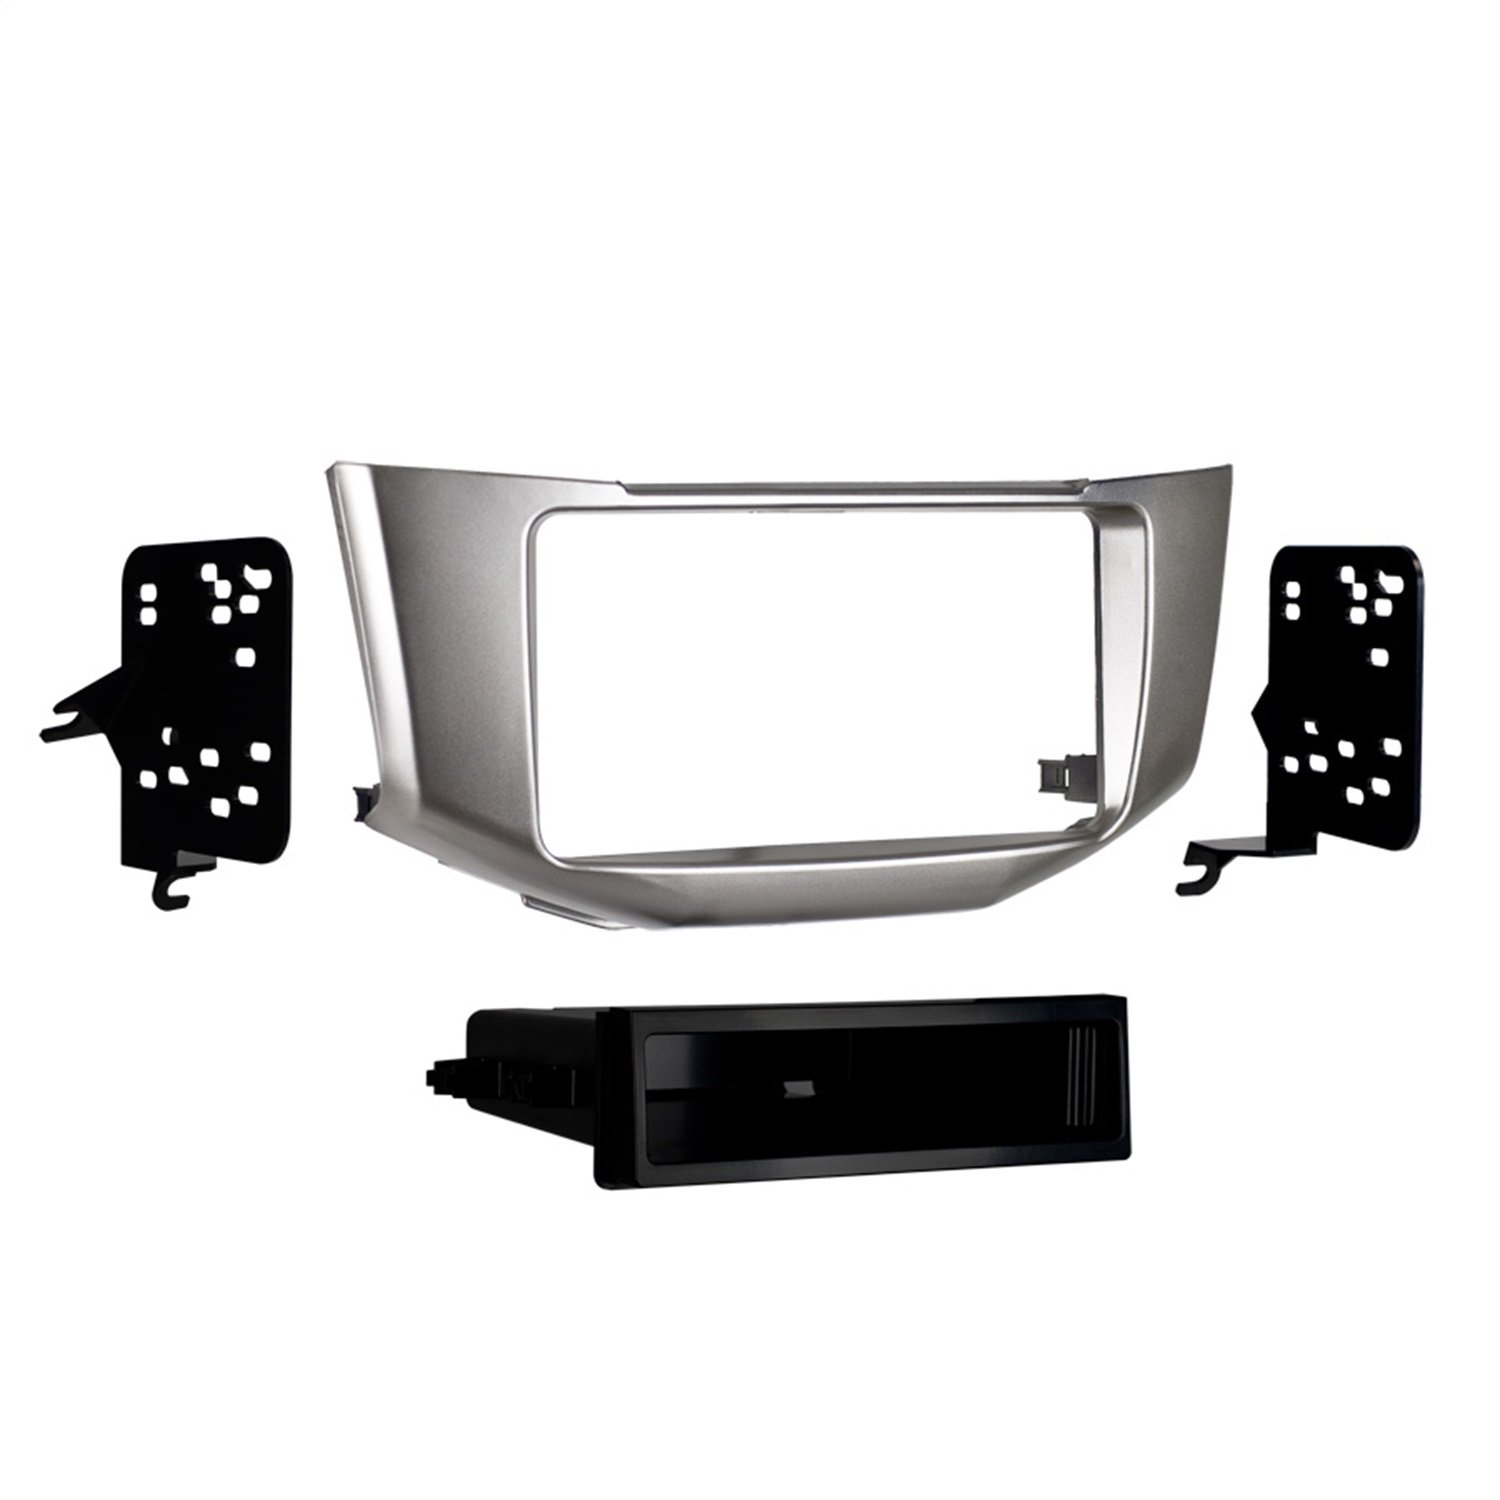 Metra 99-8159S Double DIN Dash Kit for Select Lexus RX Vehicles Metra Electronics Corporation